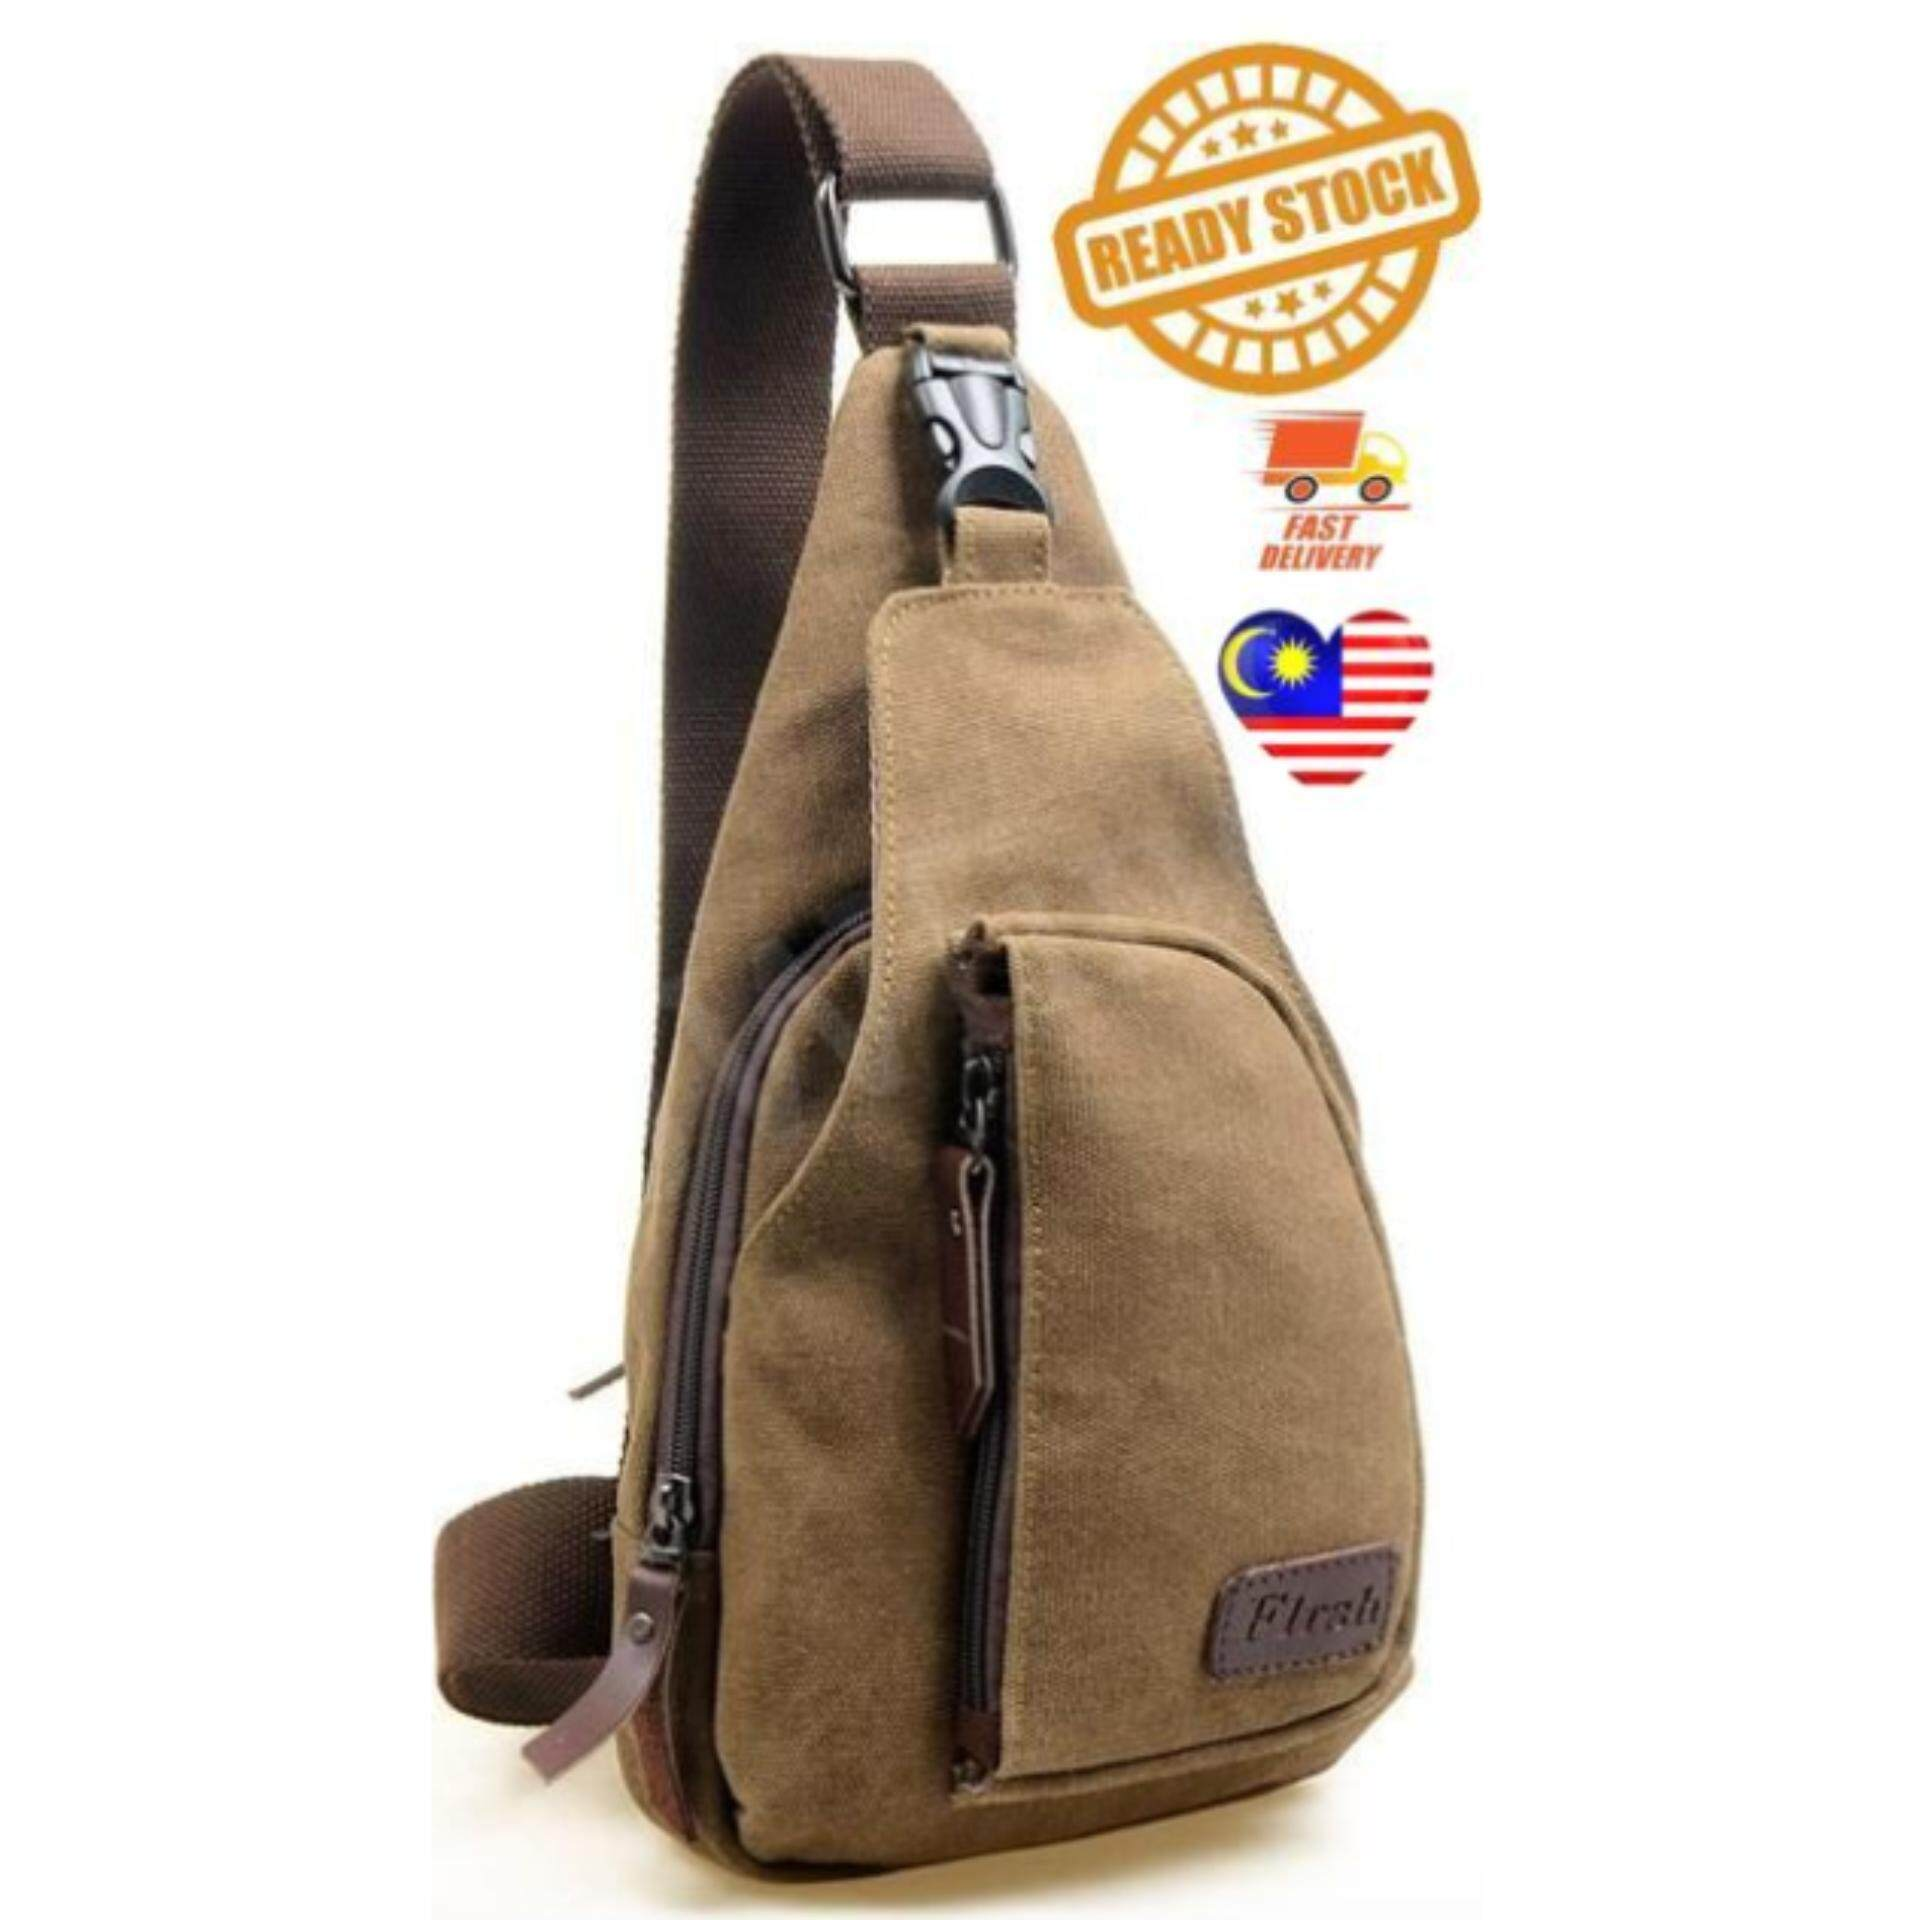 a000e0b026e1 Men Bags 3 - Buy Men Bags 3 at Best Price in Malaysia